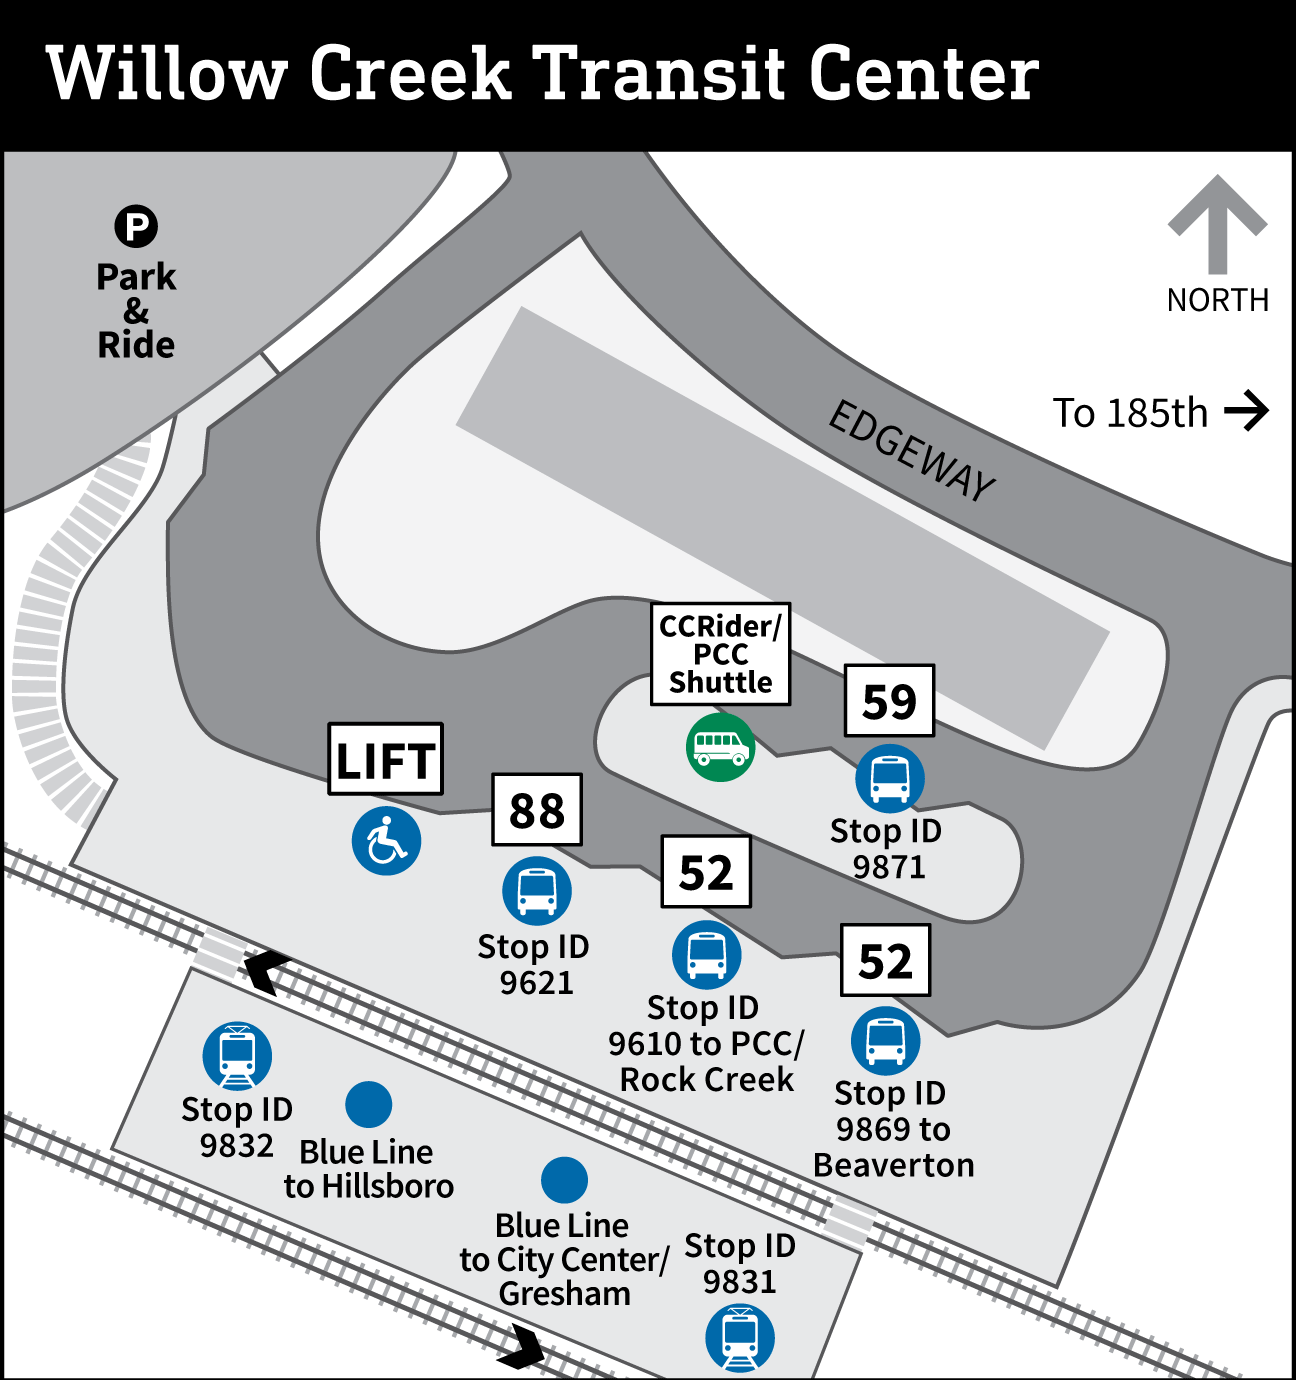 Map of Willow Creek Transit Center